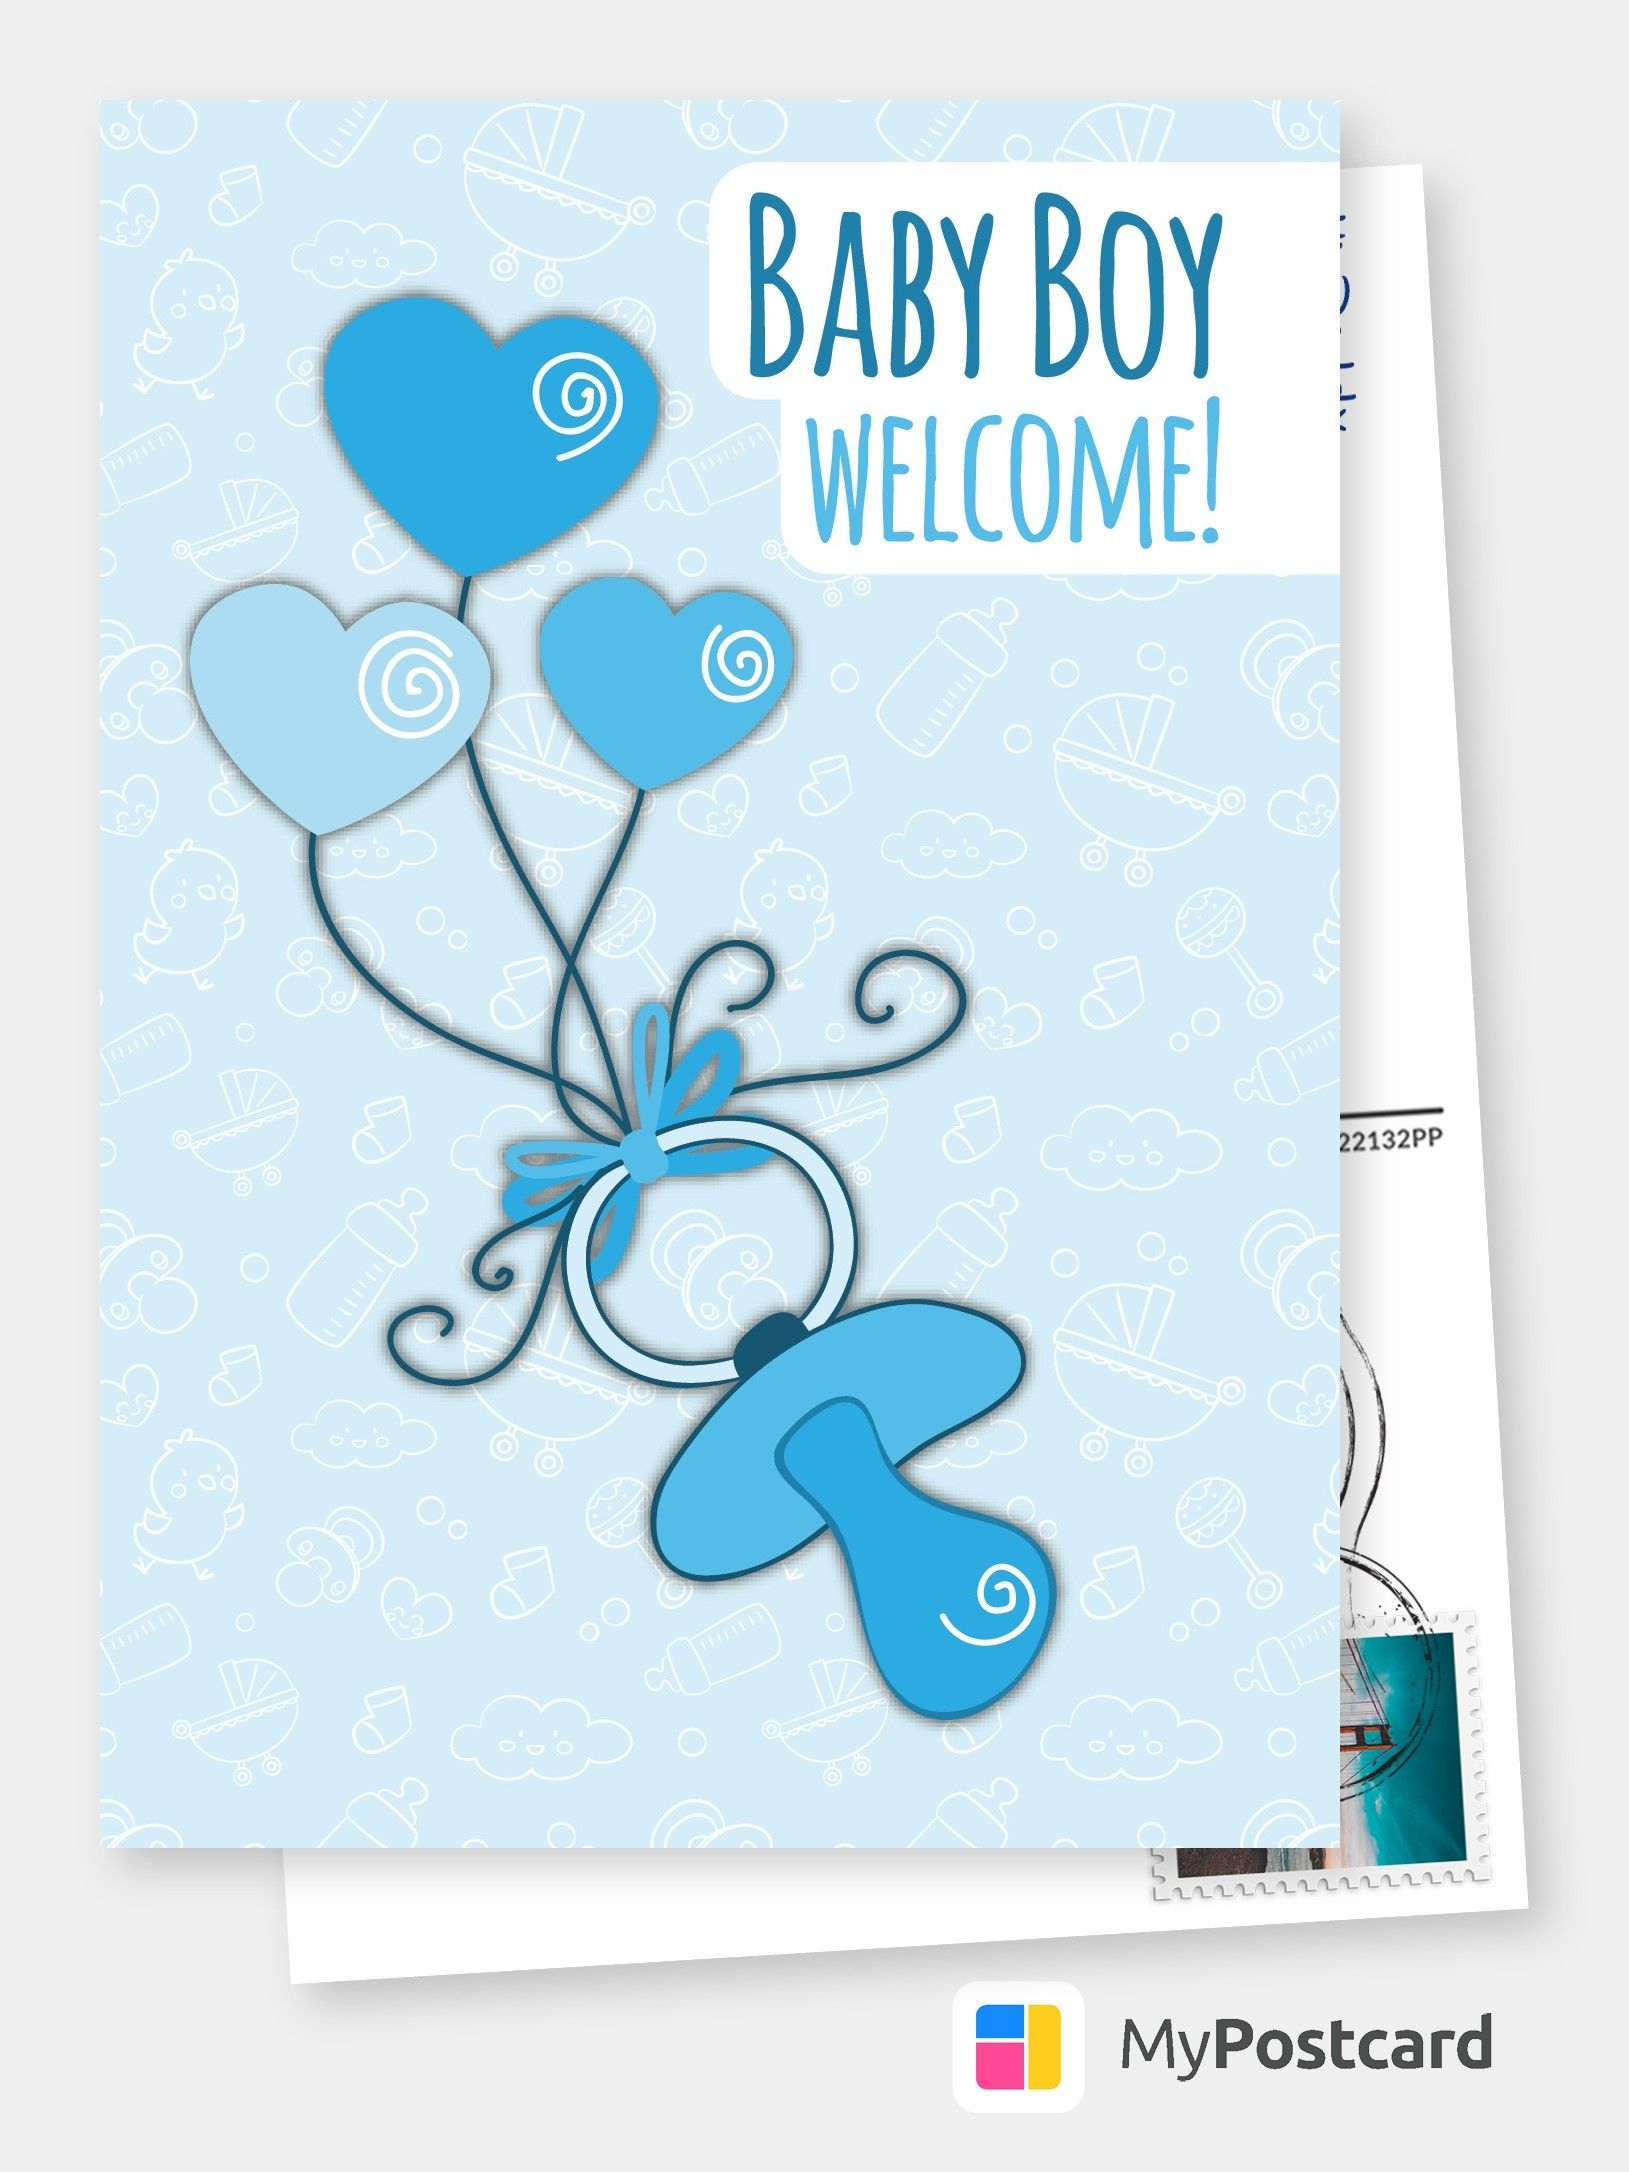 Baby Boy Welcome Baby Family Cards Send Real Postcards Online Baby Greeting Cards Baby Boy Cards Boy Cards